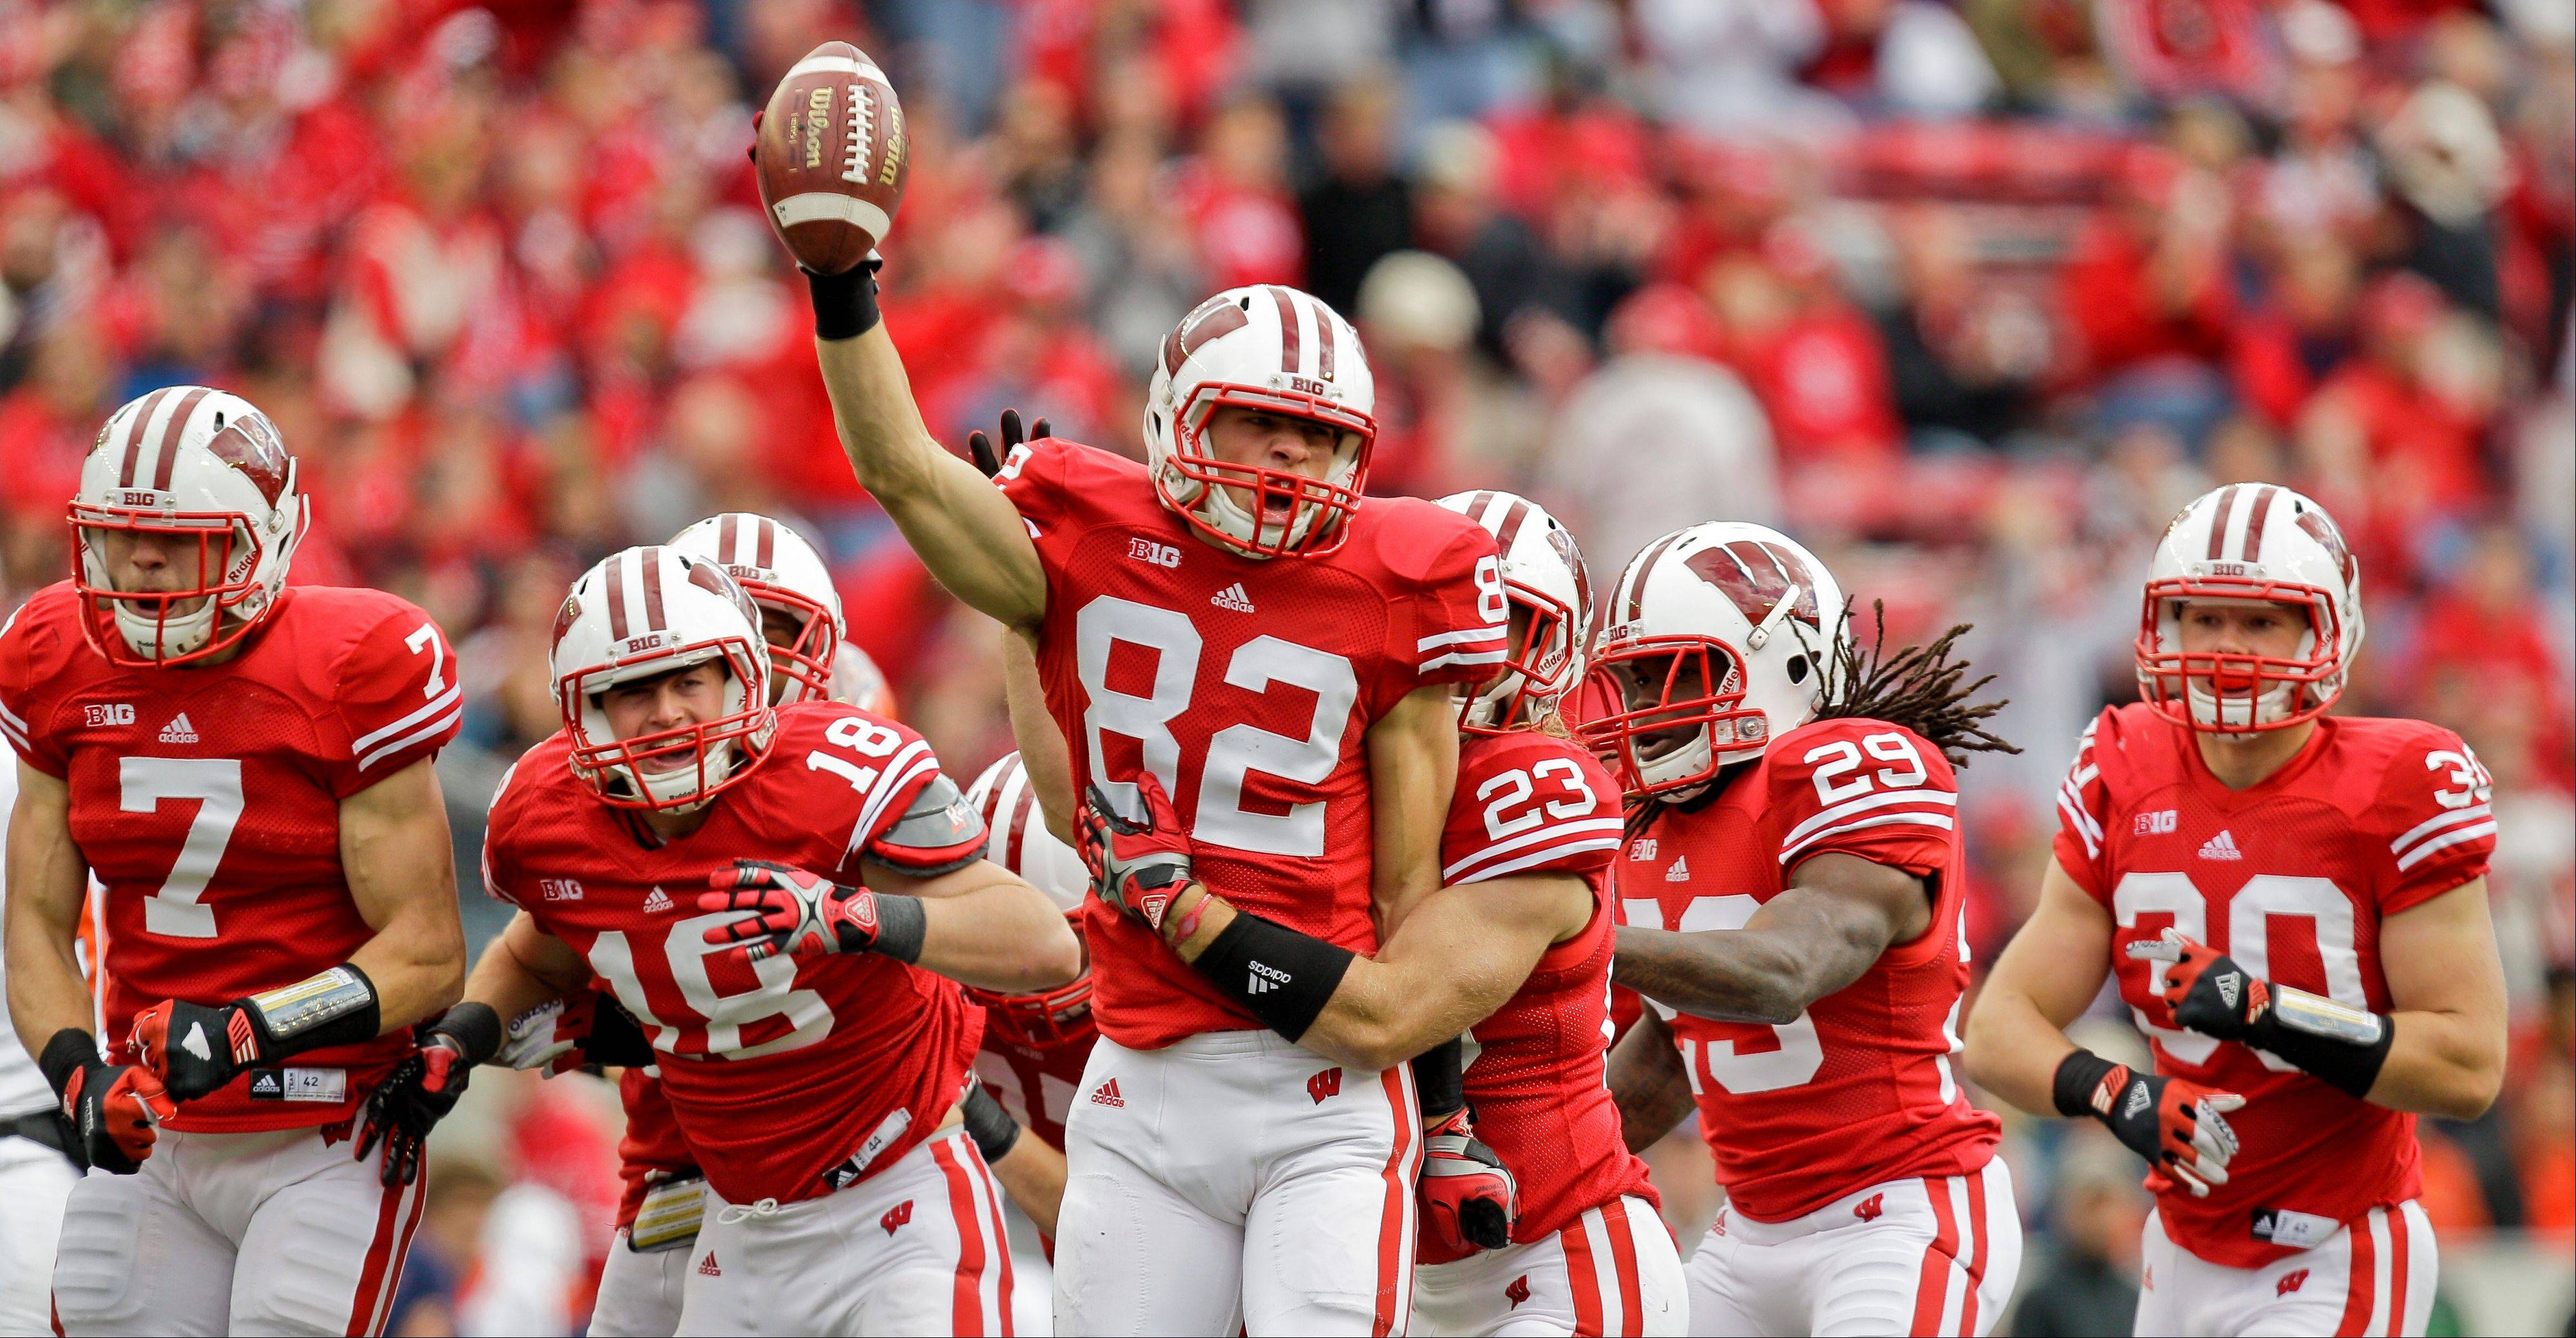 Wisconsin's Jake Stengel (82) celebrates after recovering a fumble on a kickoff against UTEP last Saturday in Madison, Wis.